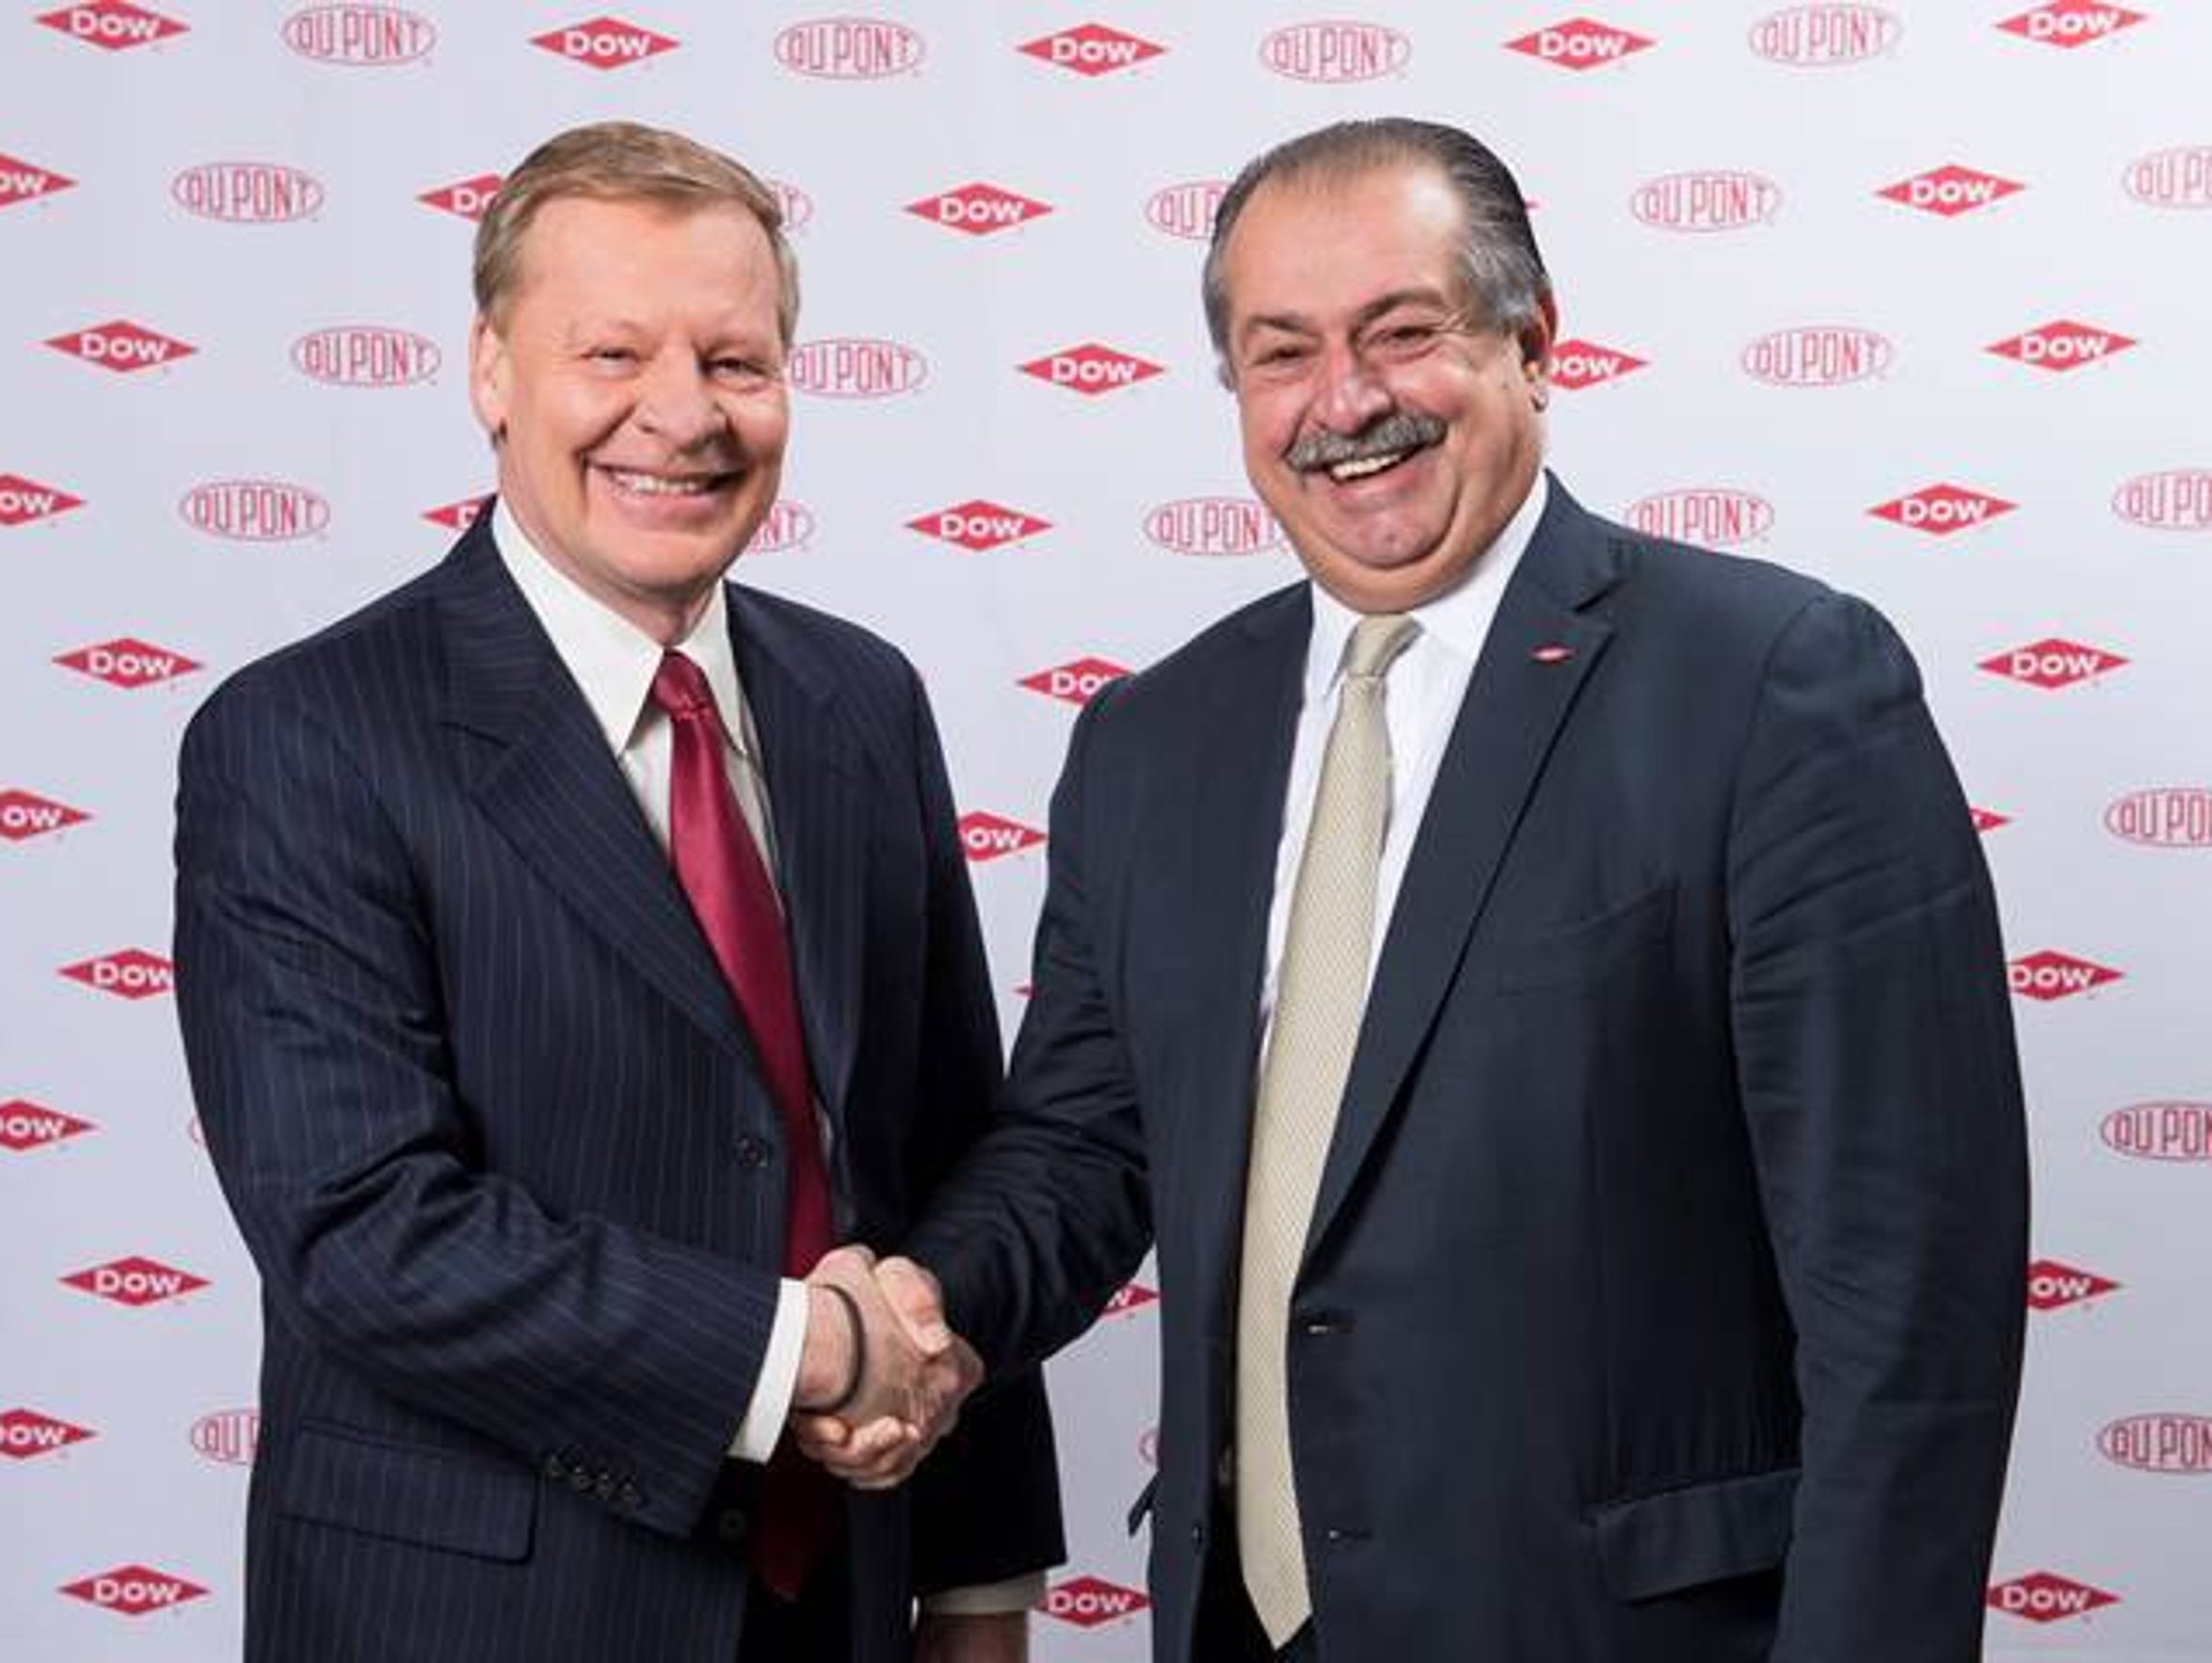 dupont or chemours who will pay the costs of c lawsuits dupont ceo ed breen left shakes the hand of the dow